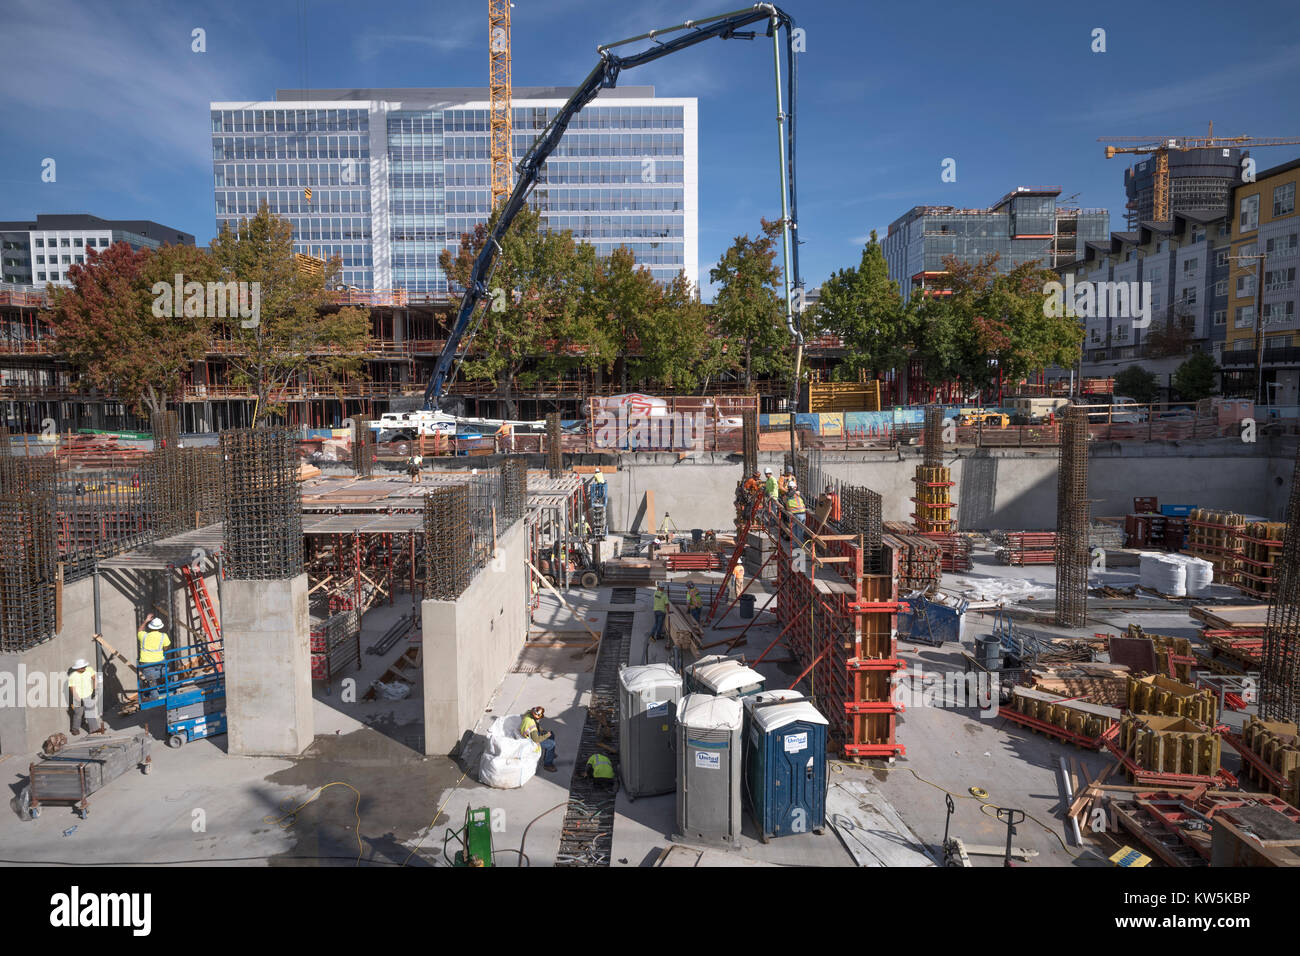 Construction site in the South Lake Union neighborhood of Seattle, Washington, USA - Stock Image